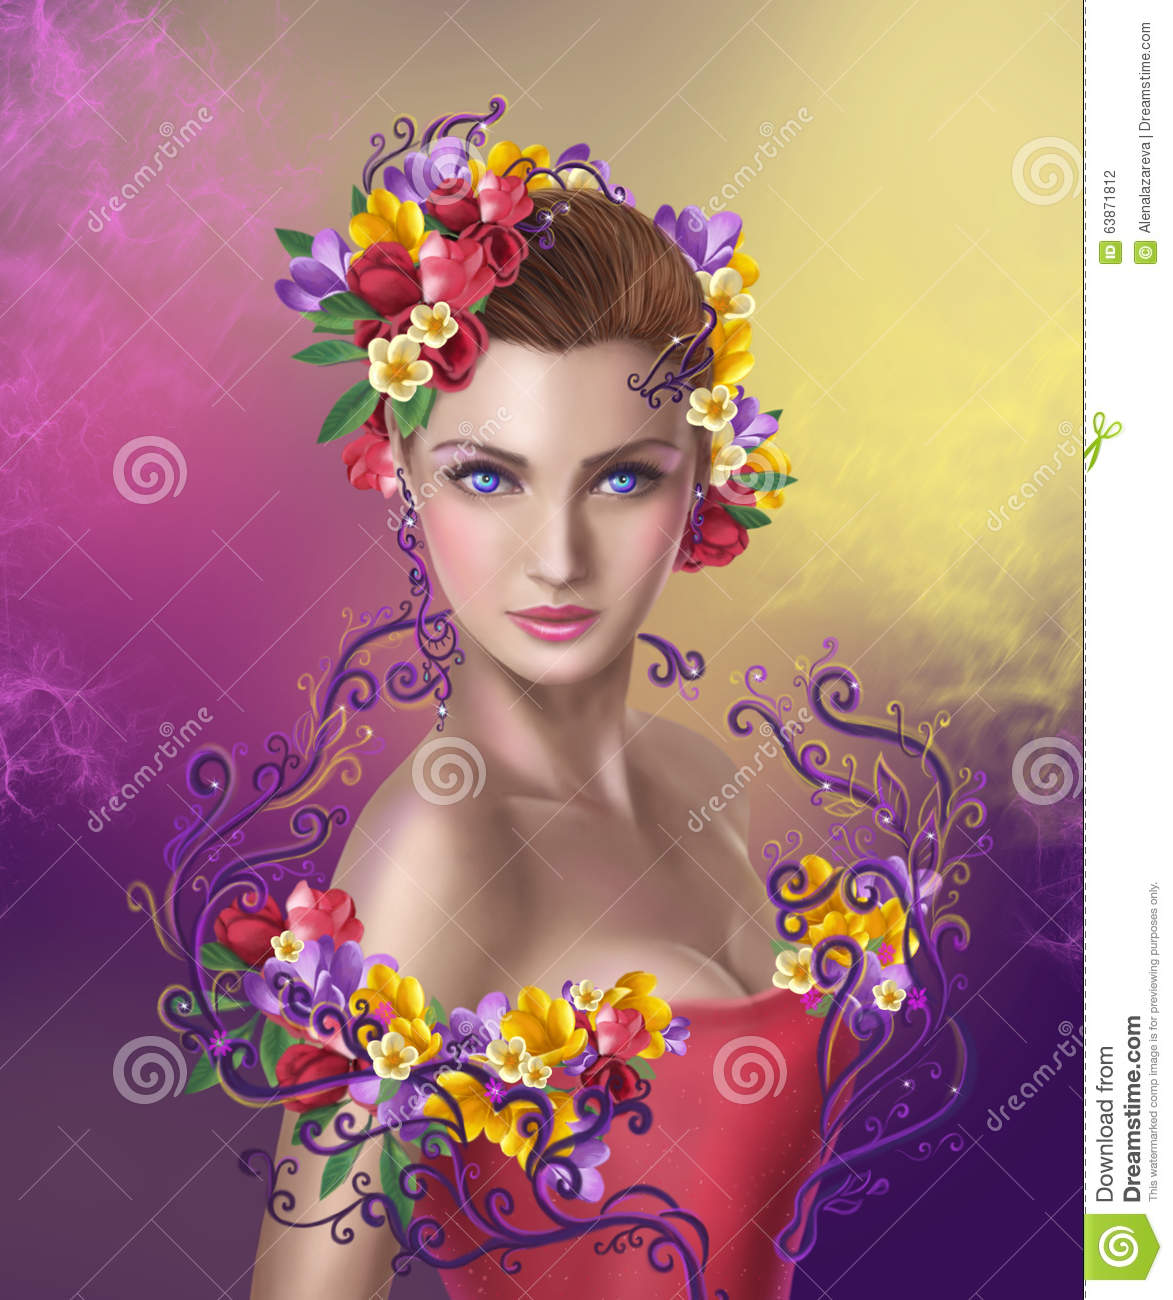 Beautiful Fantasy Fairy Woman With Hairstyle Color Flowers